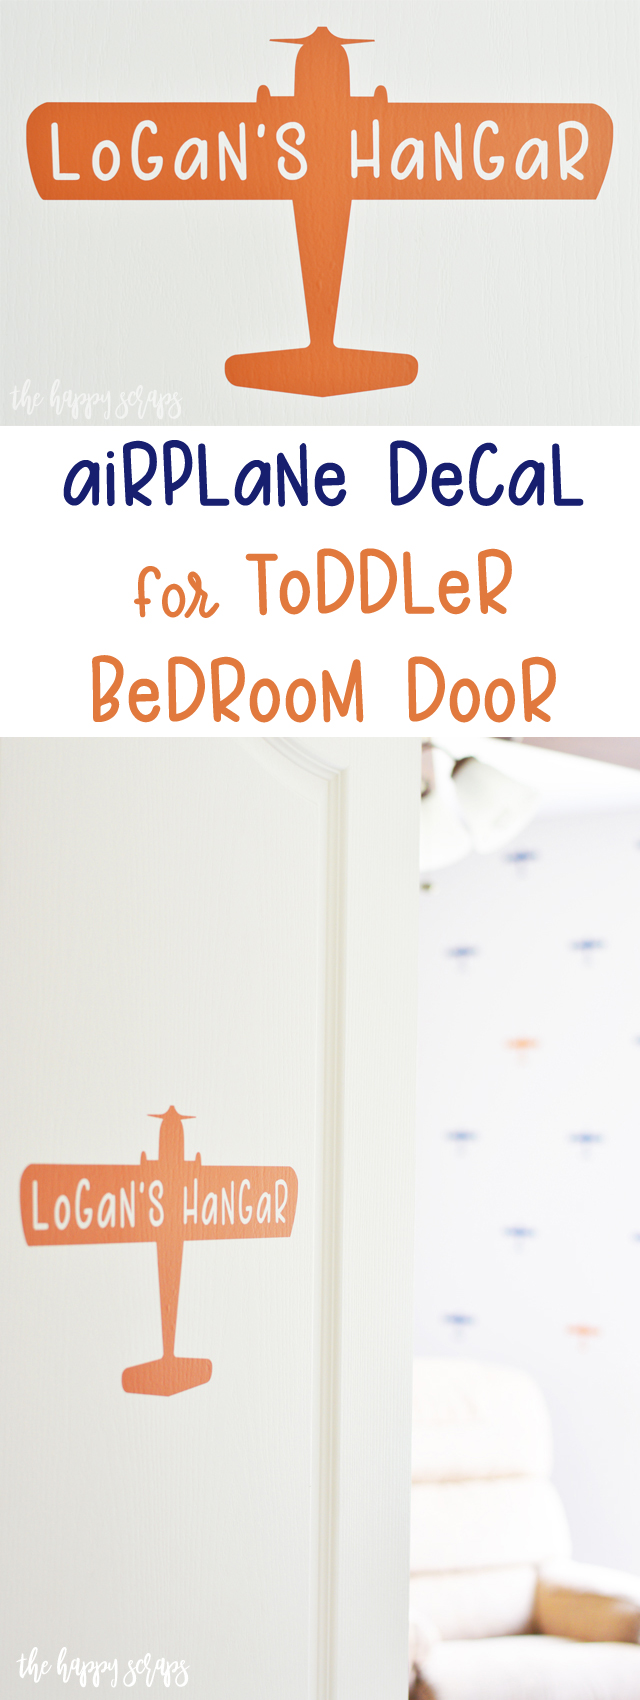 This simple Airplane Decal for Toddler Bedroom Door is a super quick and easy project that is sure to make your toddler smile.